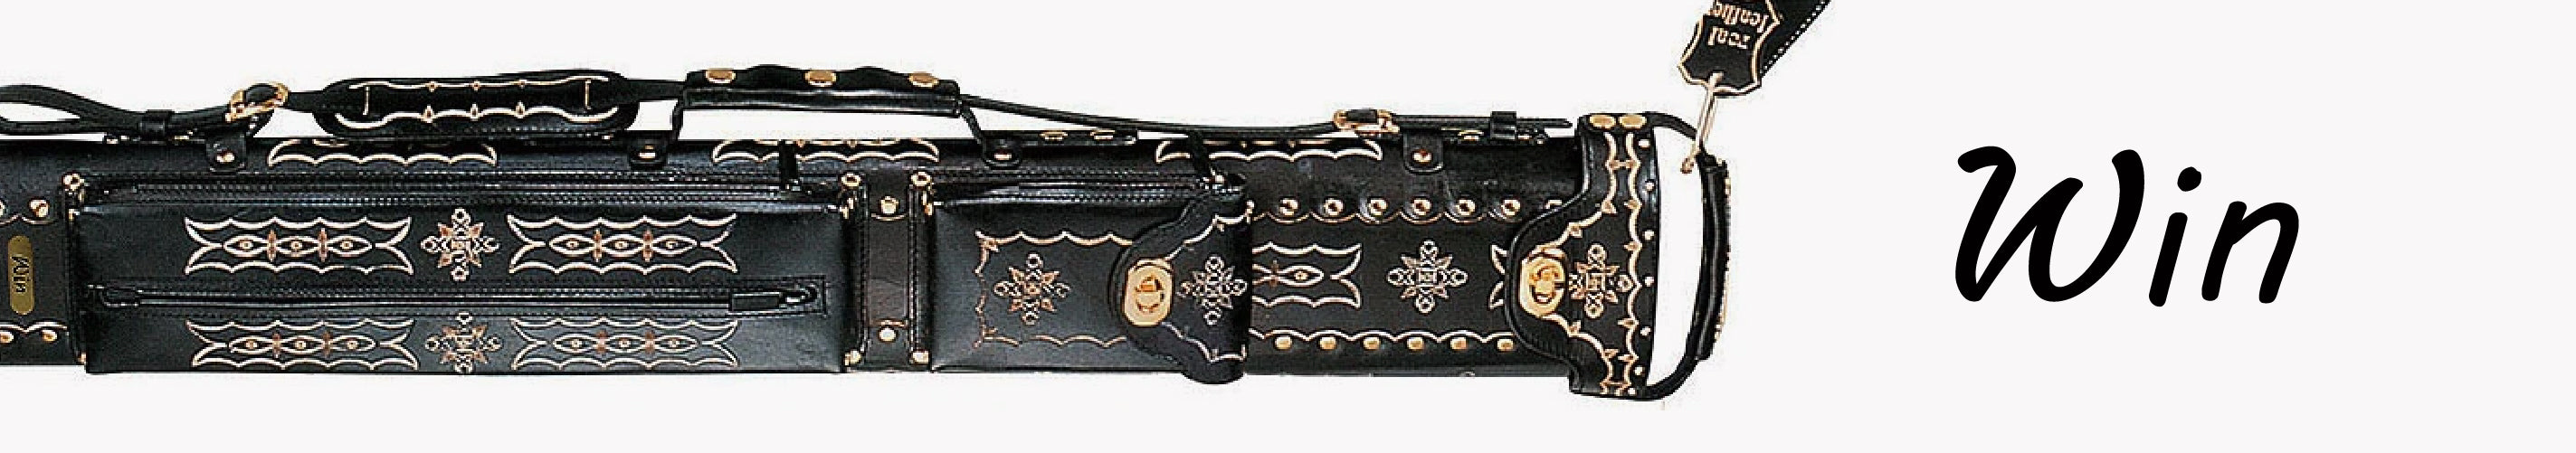 Win Hand Tooled Cases